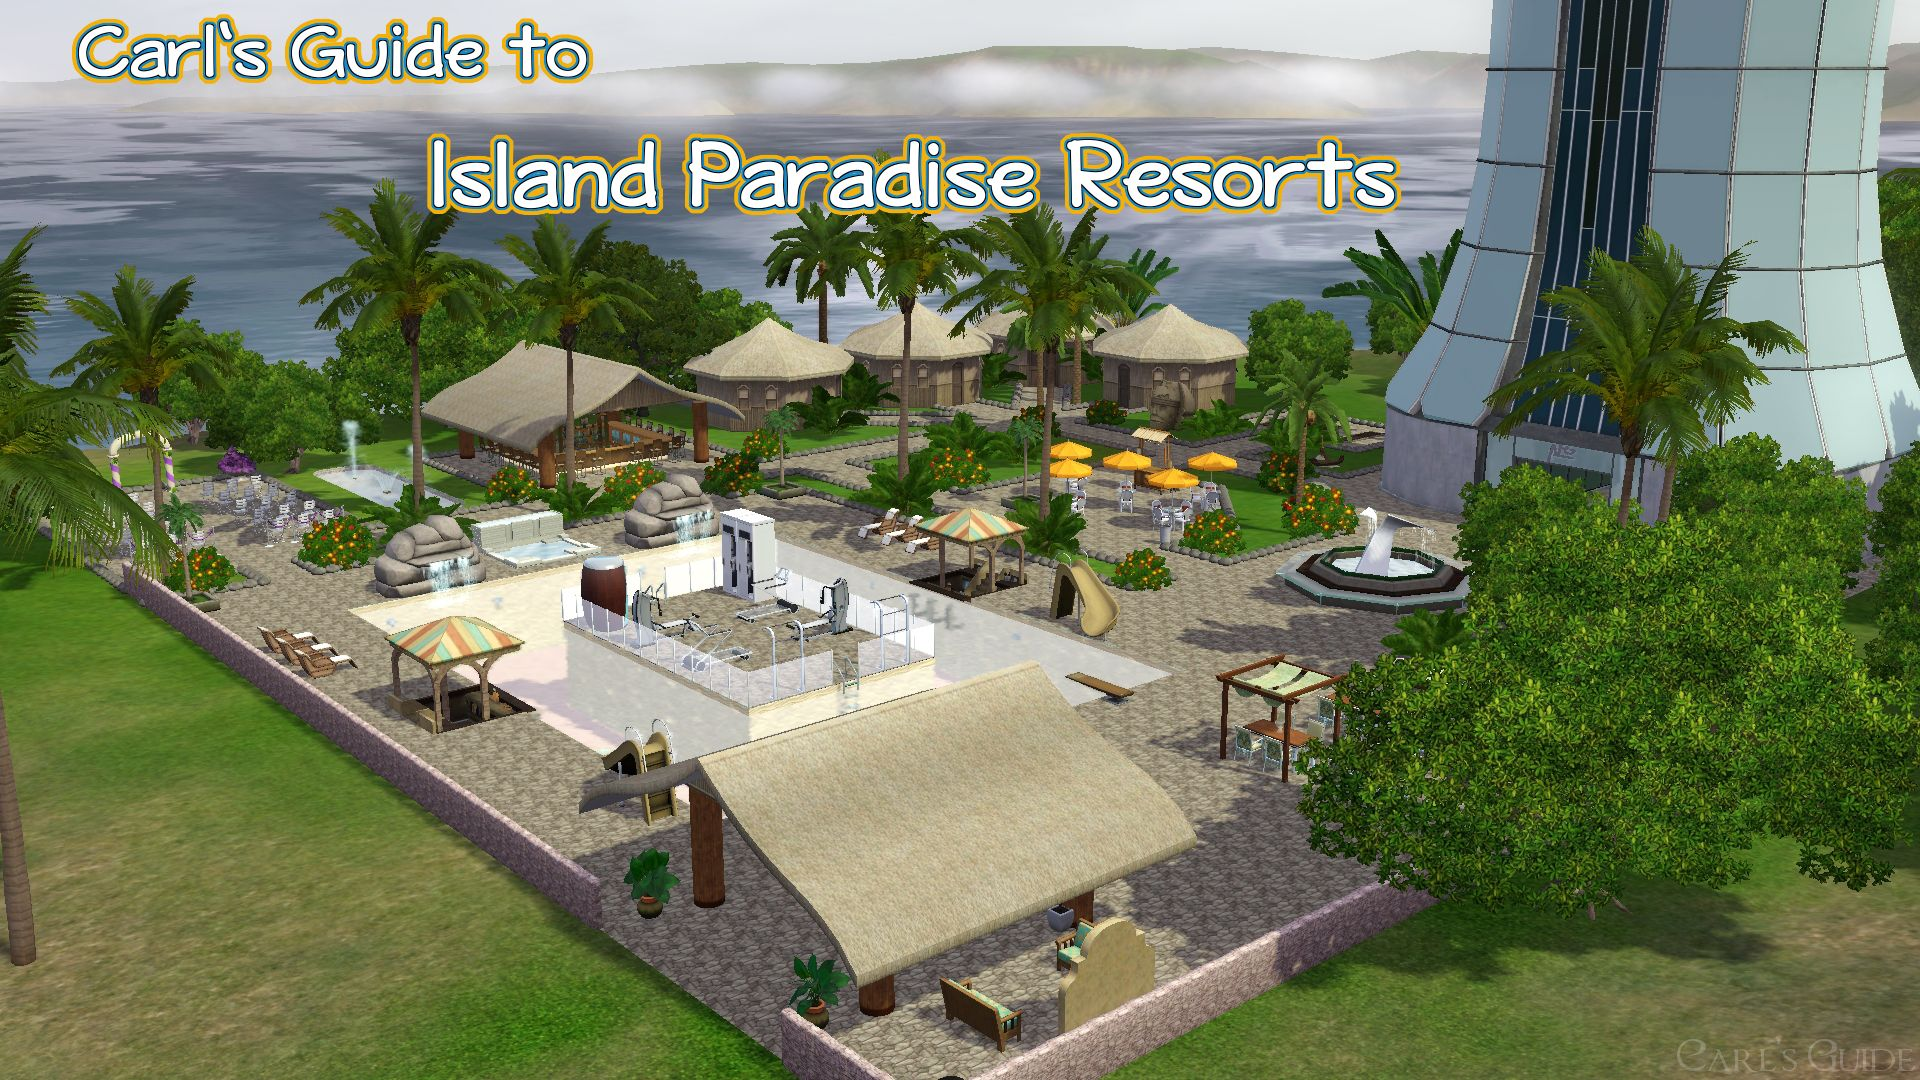 How to install the sims 3 starter pack on pc - Island Paradise Resorts